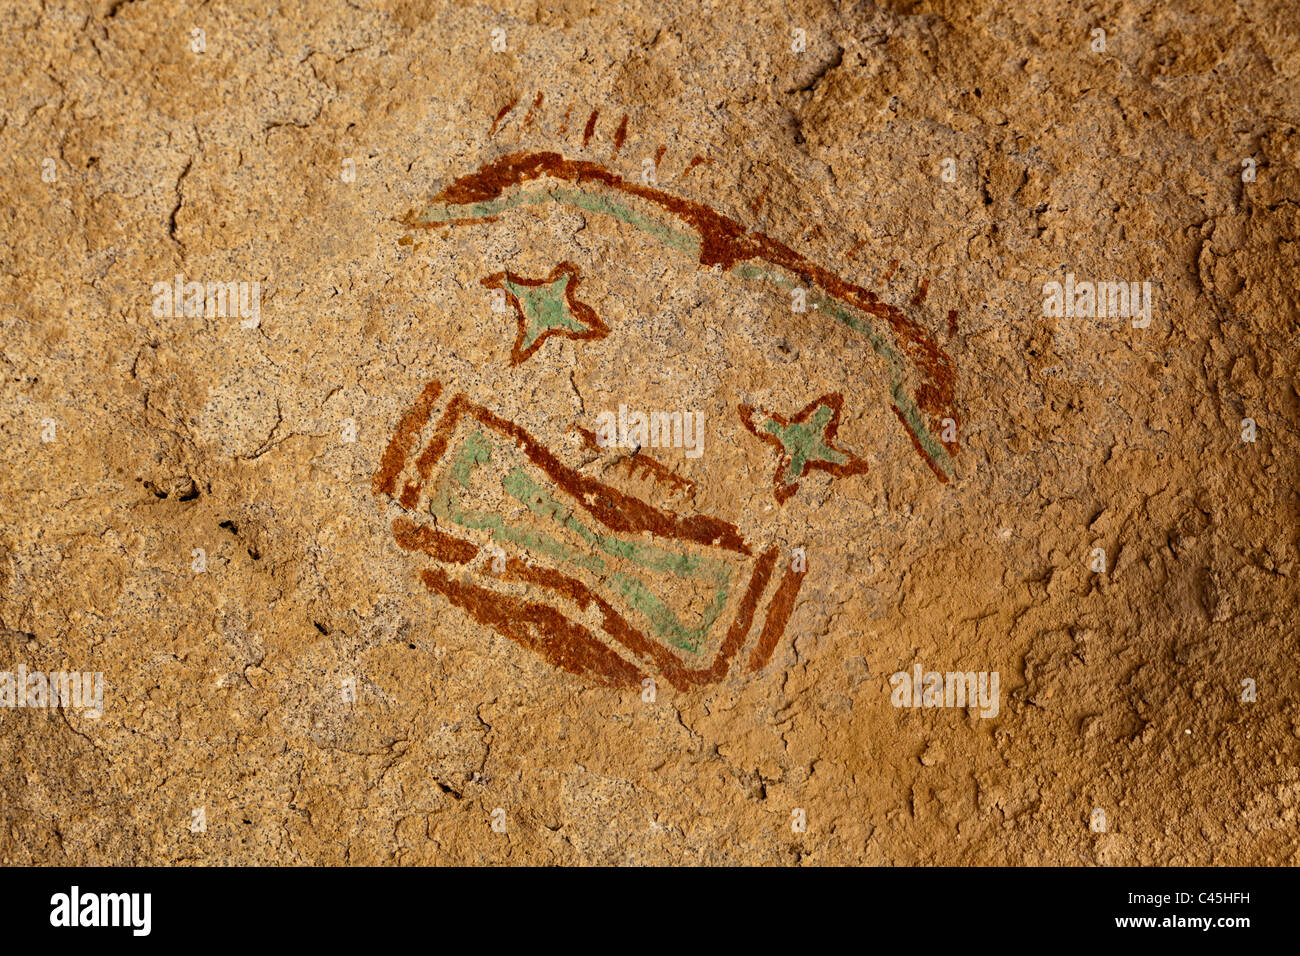 Mask pictograph on rock painting at Hueco Tanks State Historic Site Texas USA - Stock Image